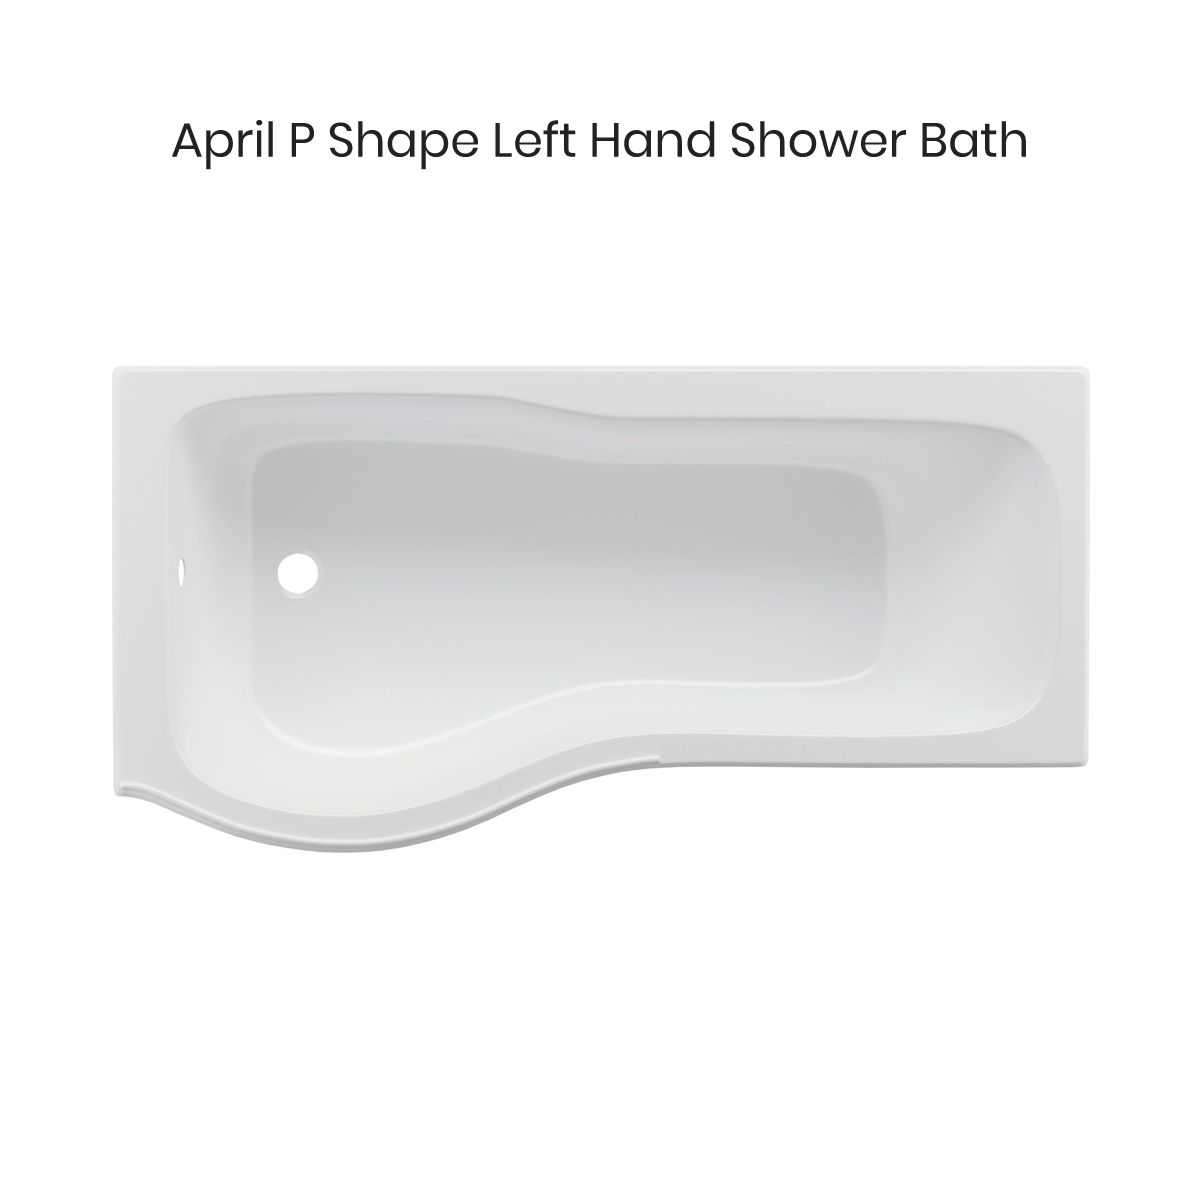 April P Shape Reinforced Shower Bath Left Hand